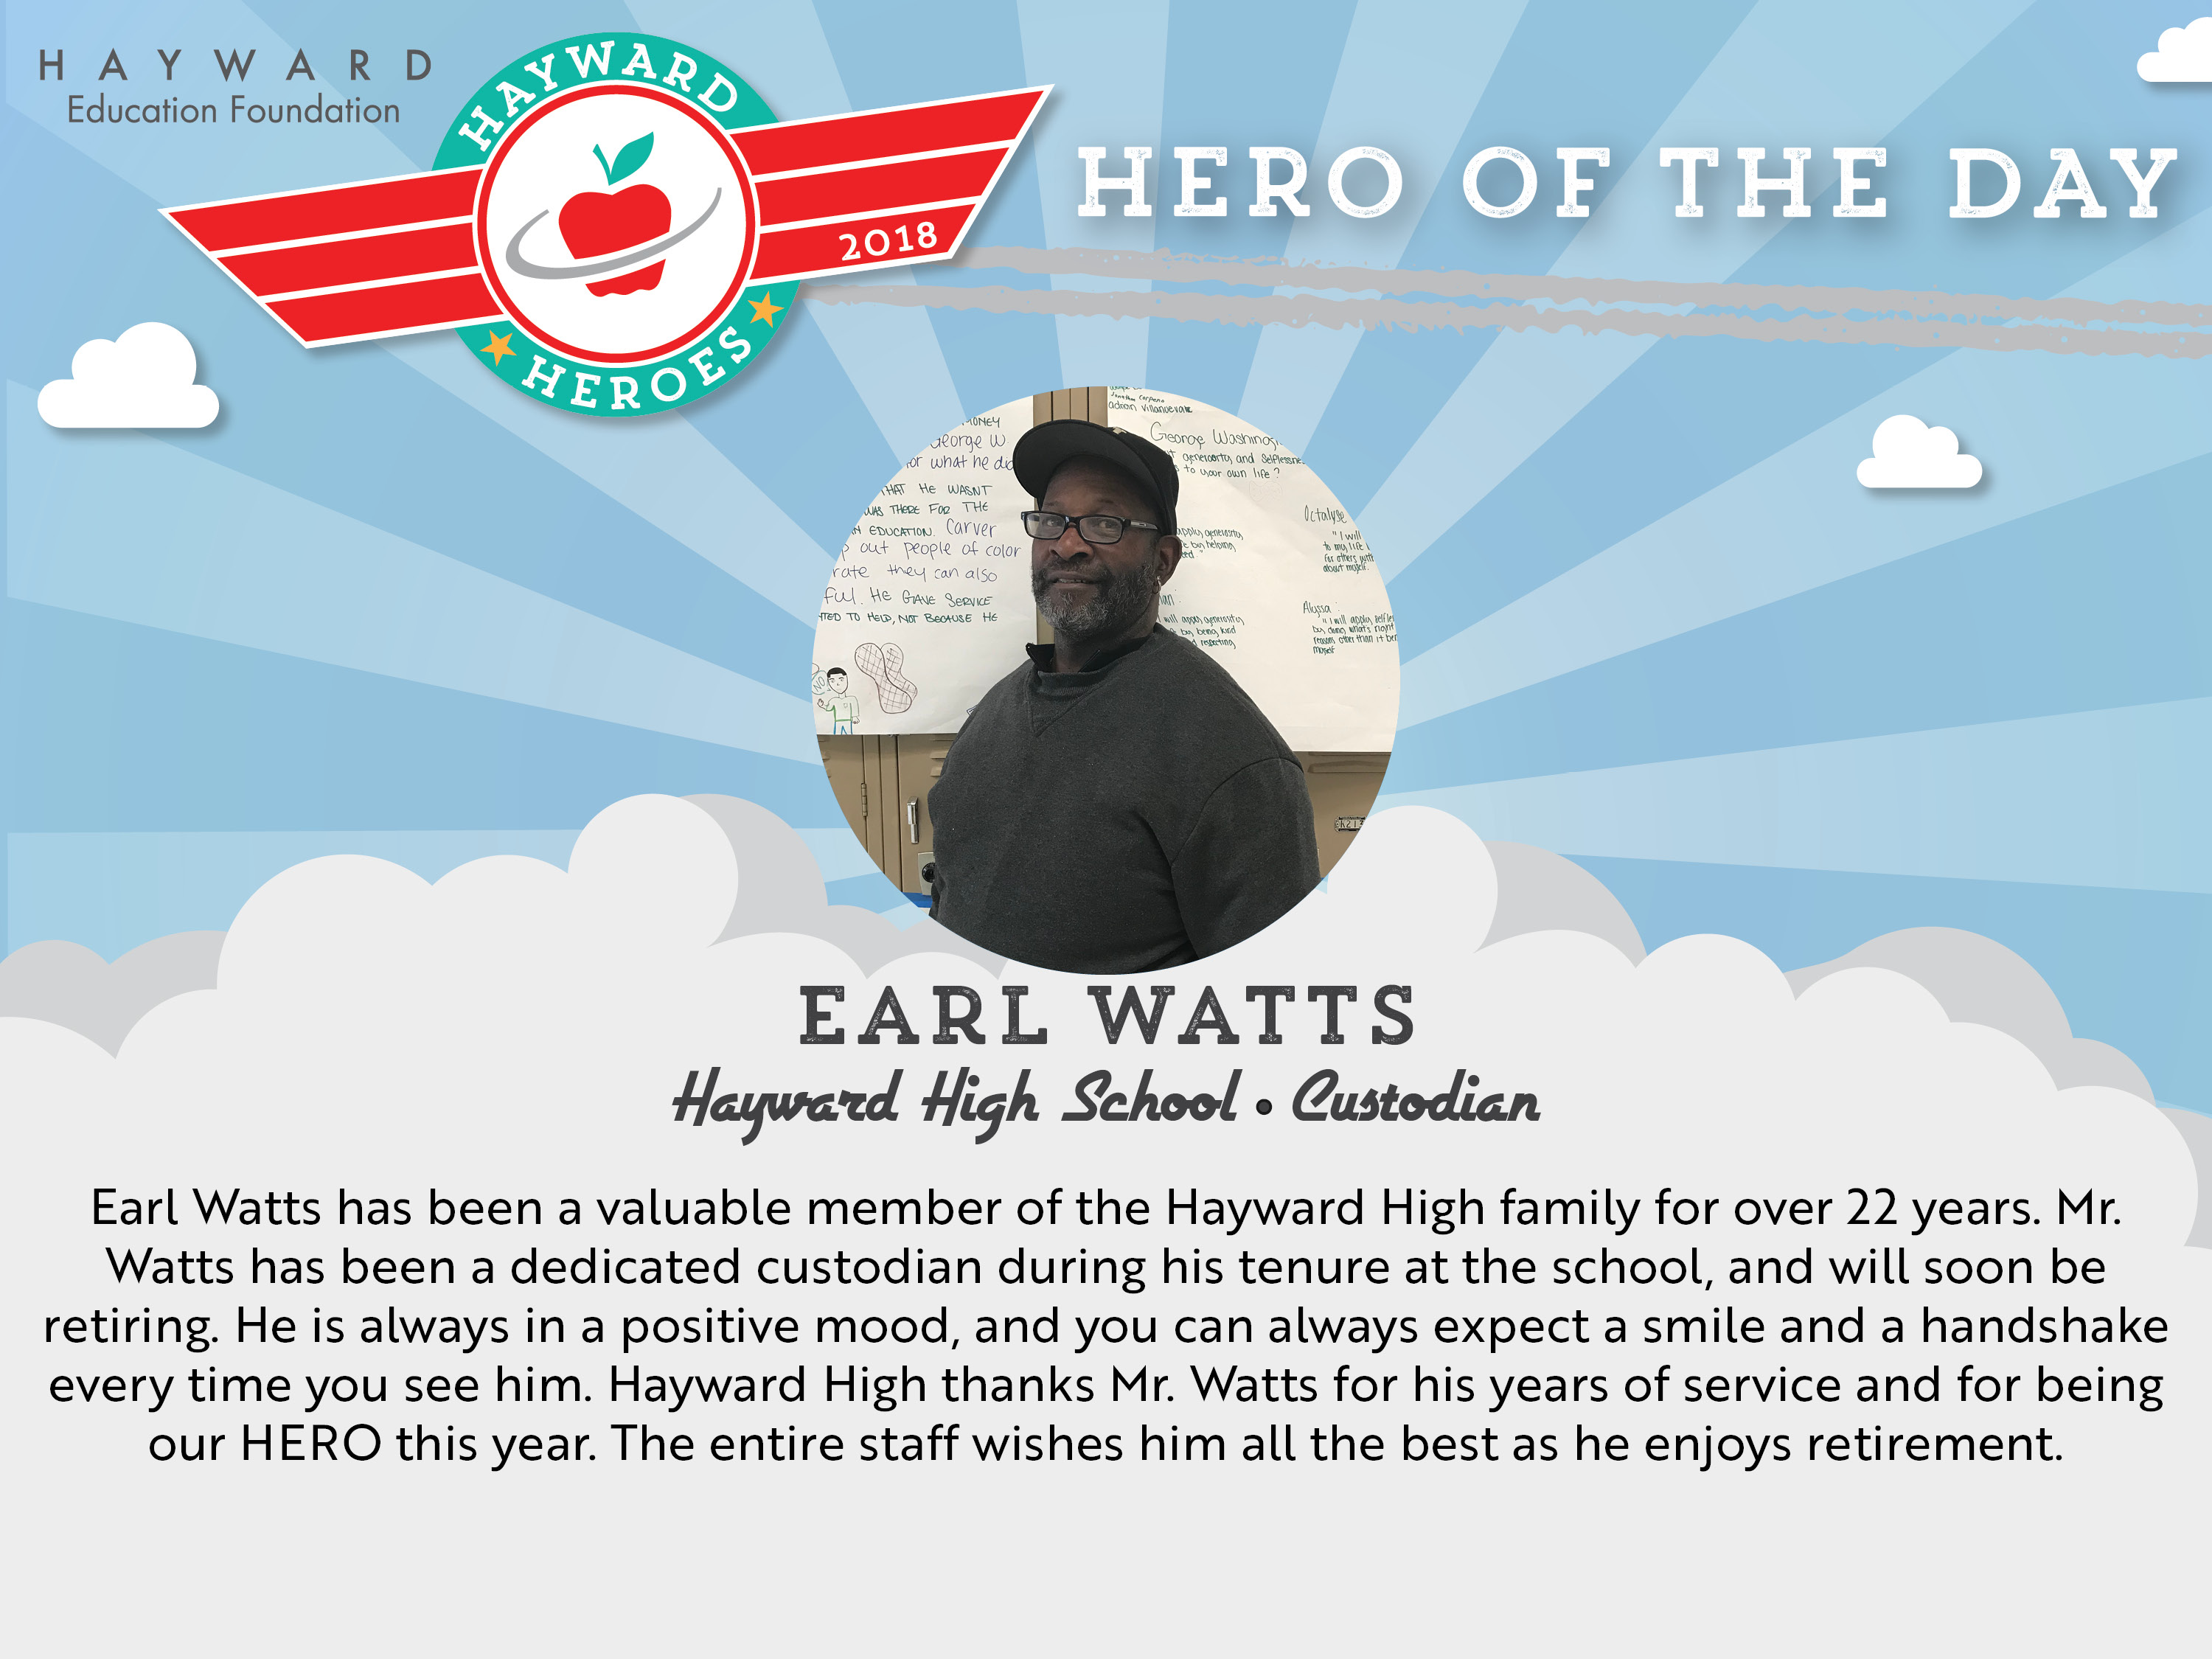 Hero a Day Slides_Watts Earl